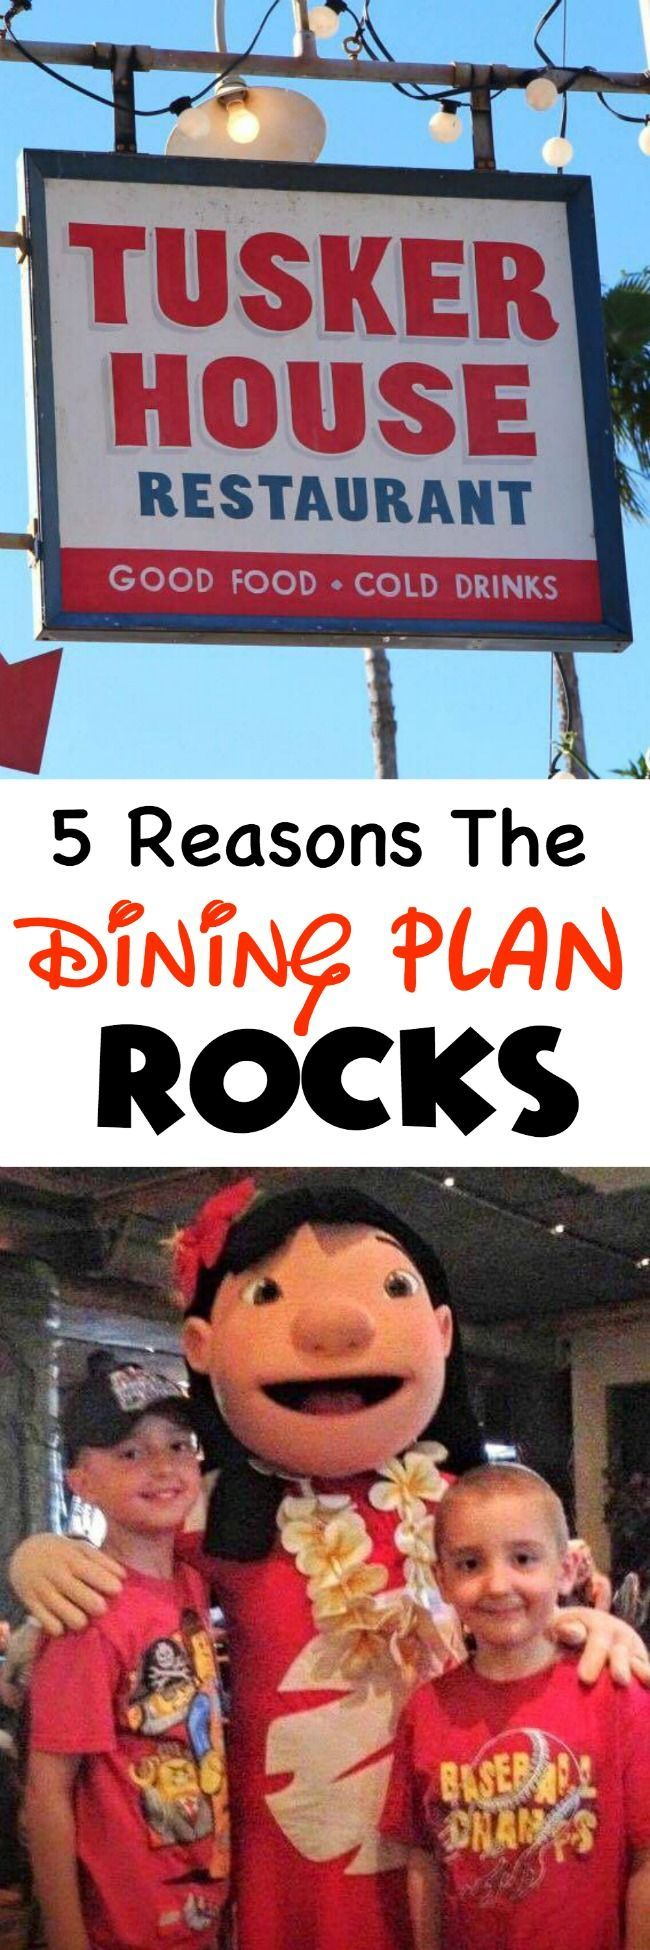 Five things that will help you decide if the Disney Dining Plan is right for you.